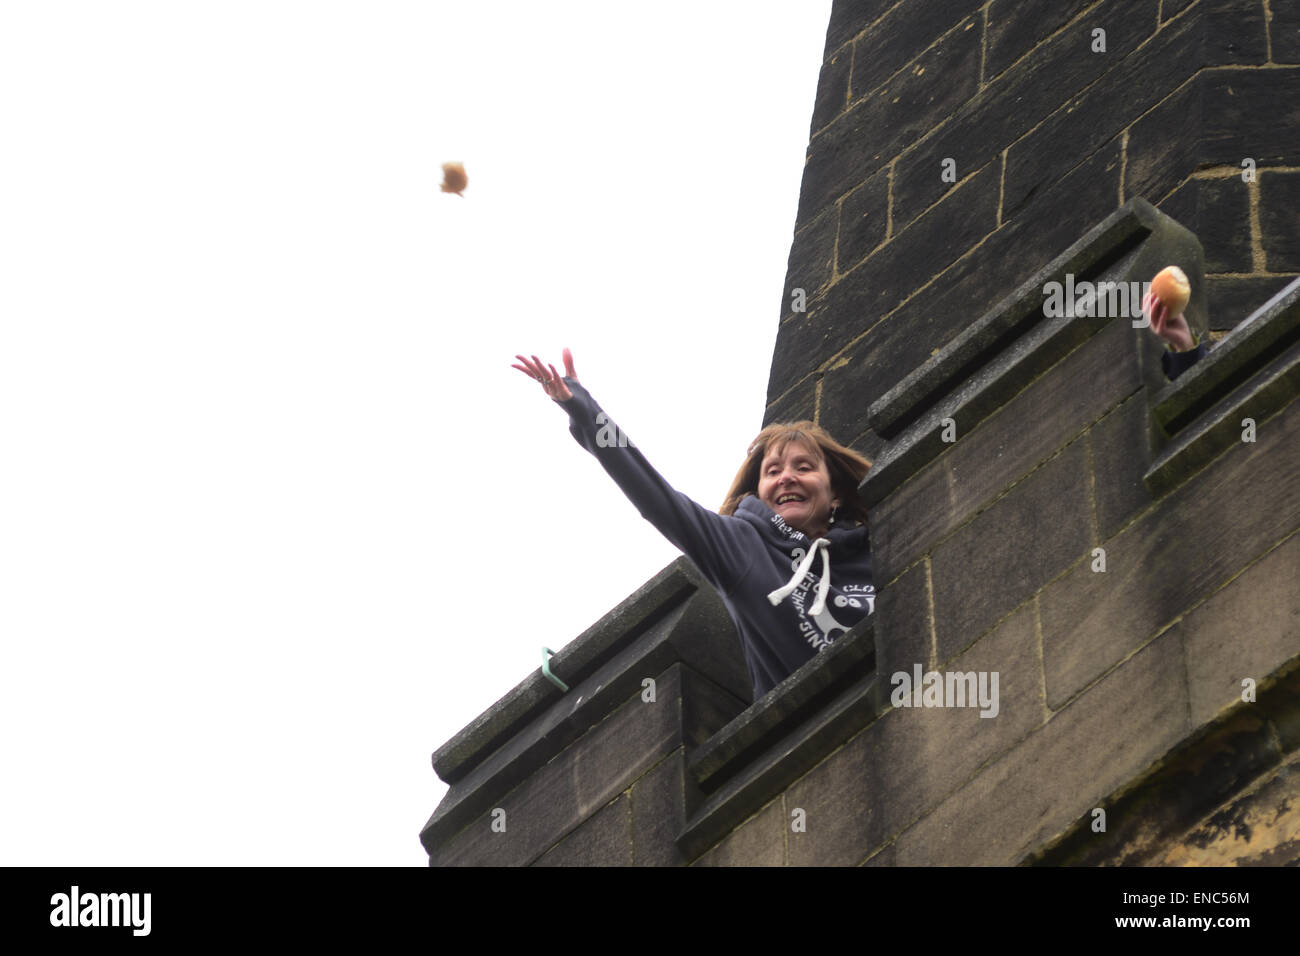 Rotherham, UK. 2nd May 2015. A church member throws a piece of bread from the church tower at Wath All Saints Parish Church near Rotherham, South Yorkshire. One hundred bread bun are thrown to the waiting crowds below as part of the annual Wath Festival. Picture: Scott Bairstow/ Alamy Stock Photo